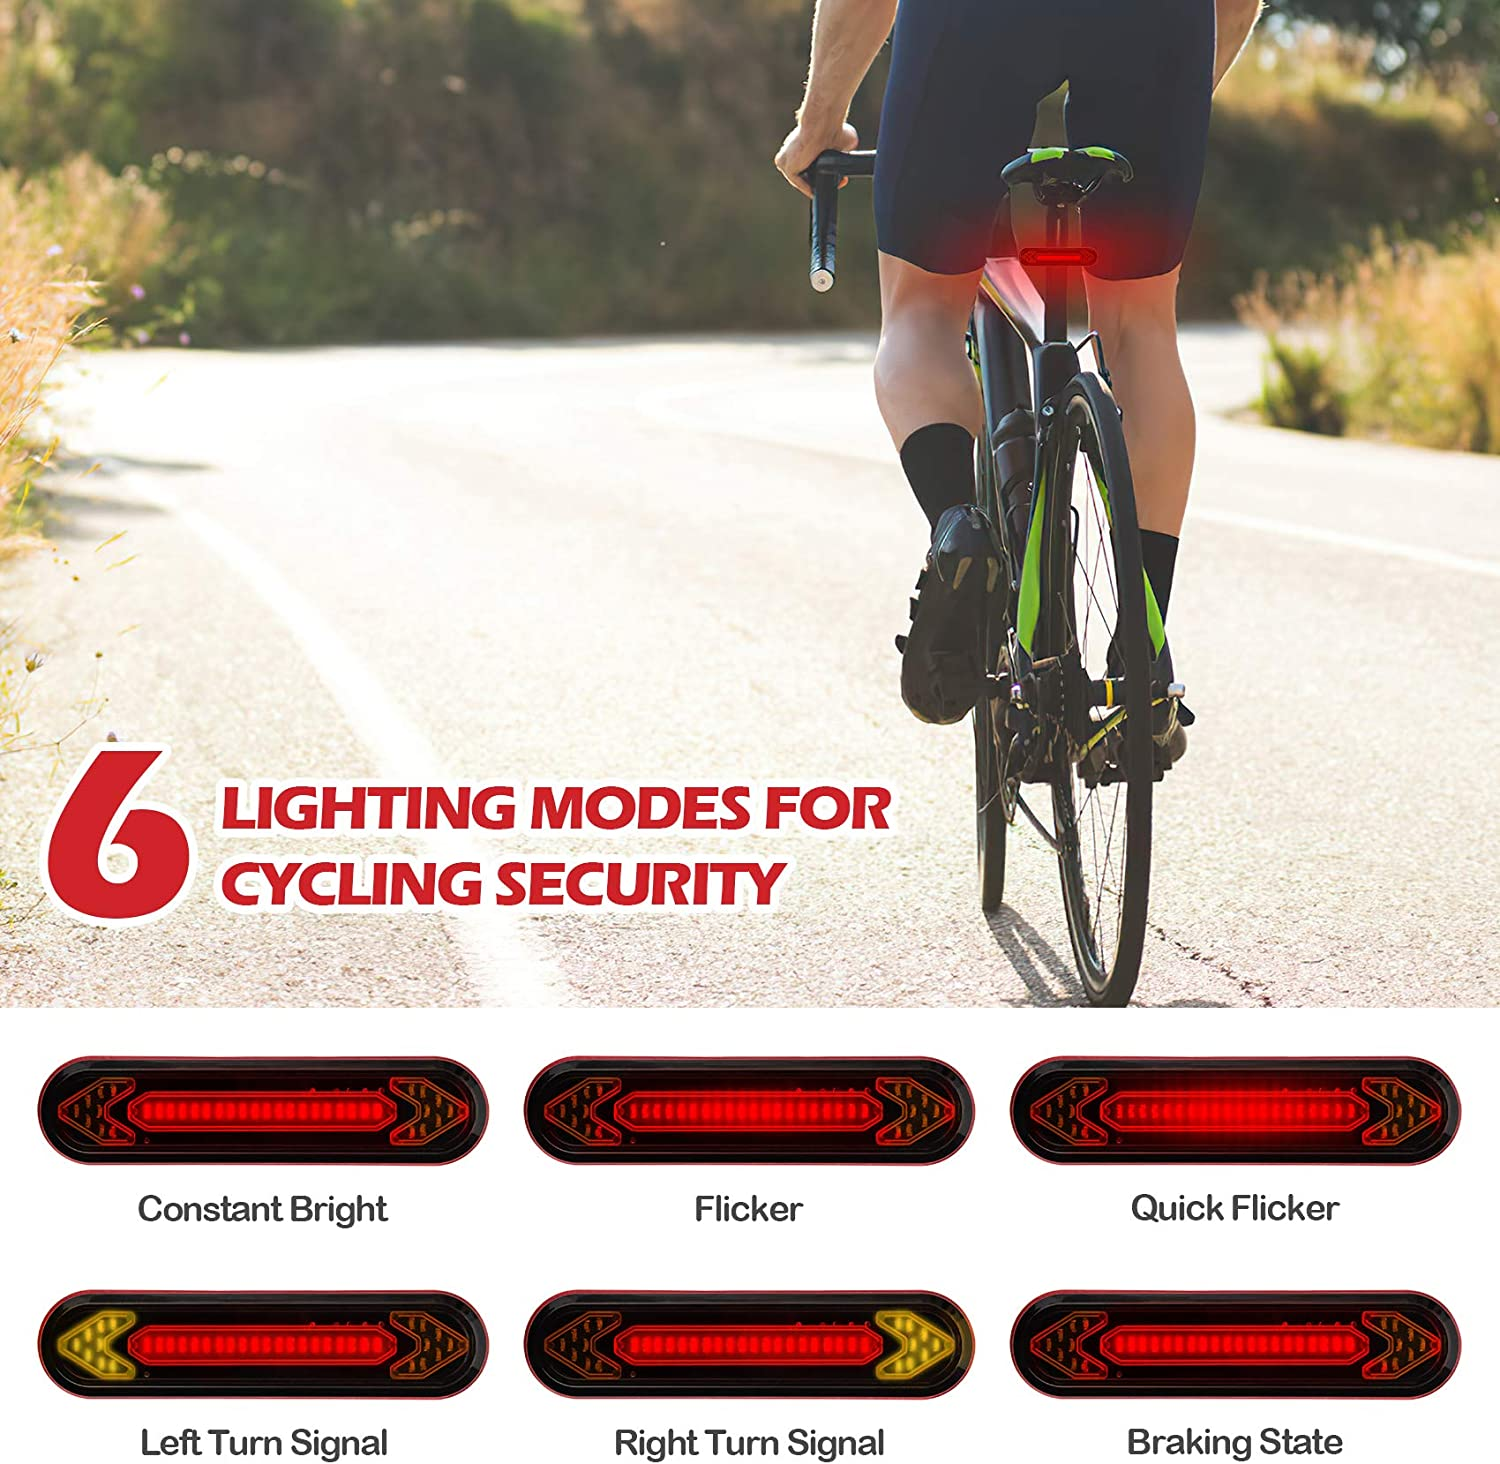 Cerbonny USB Rechargeable Bike Tail Light /& 2 Tire Lights for Bikes Remote Control 6 Modes Bright LED Bike Rear Light with Turn Signal Cycling Safety Light for Mountain Road Bike